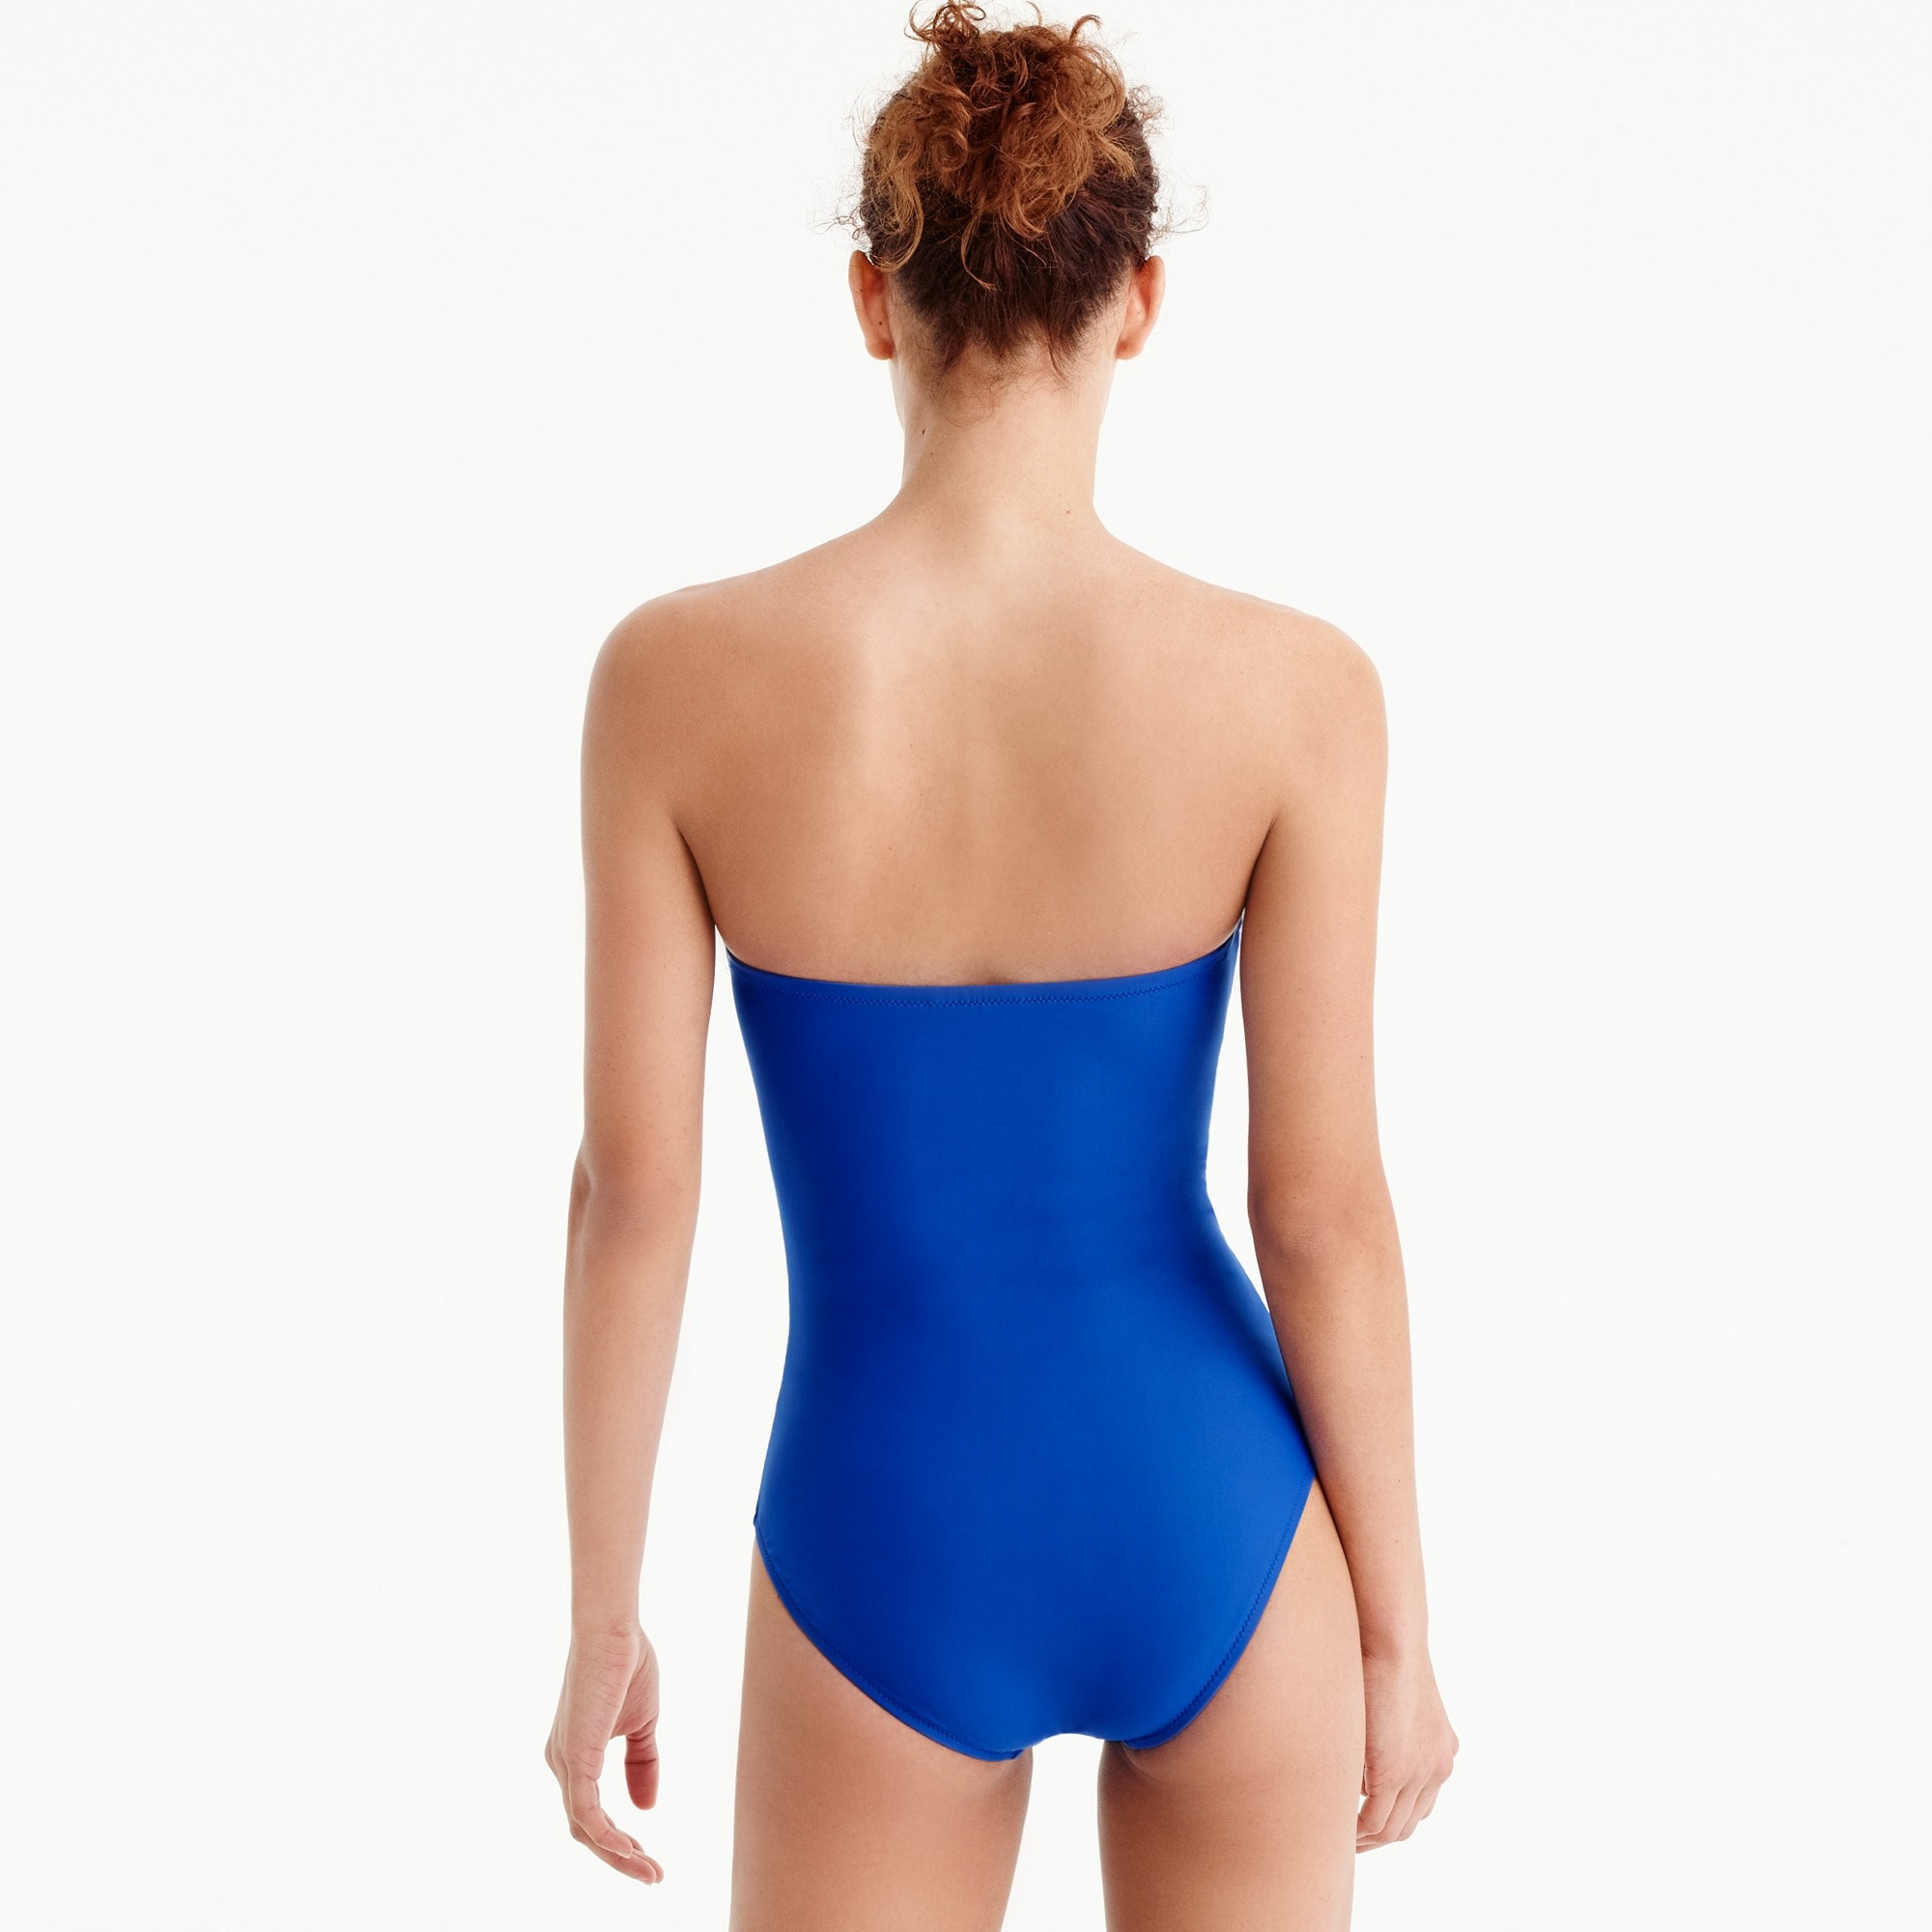 DD-cup ruched bandeau one-piece swimsuit